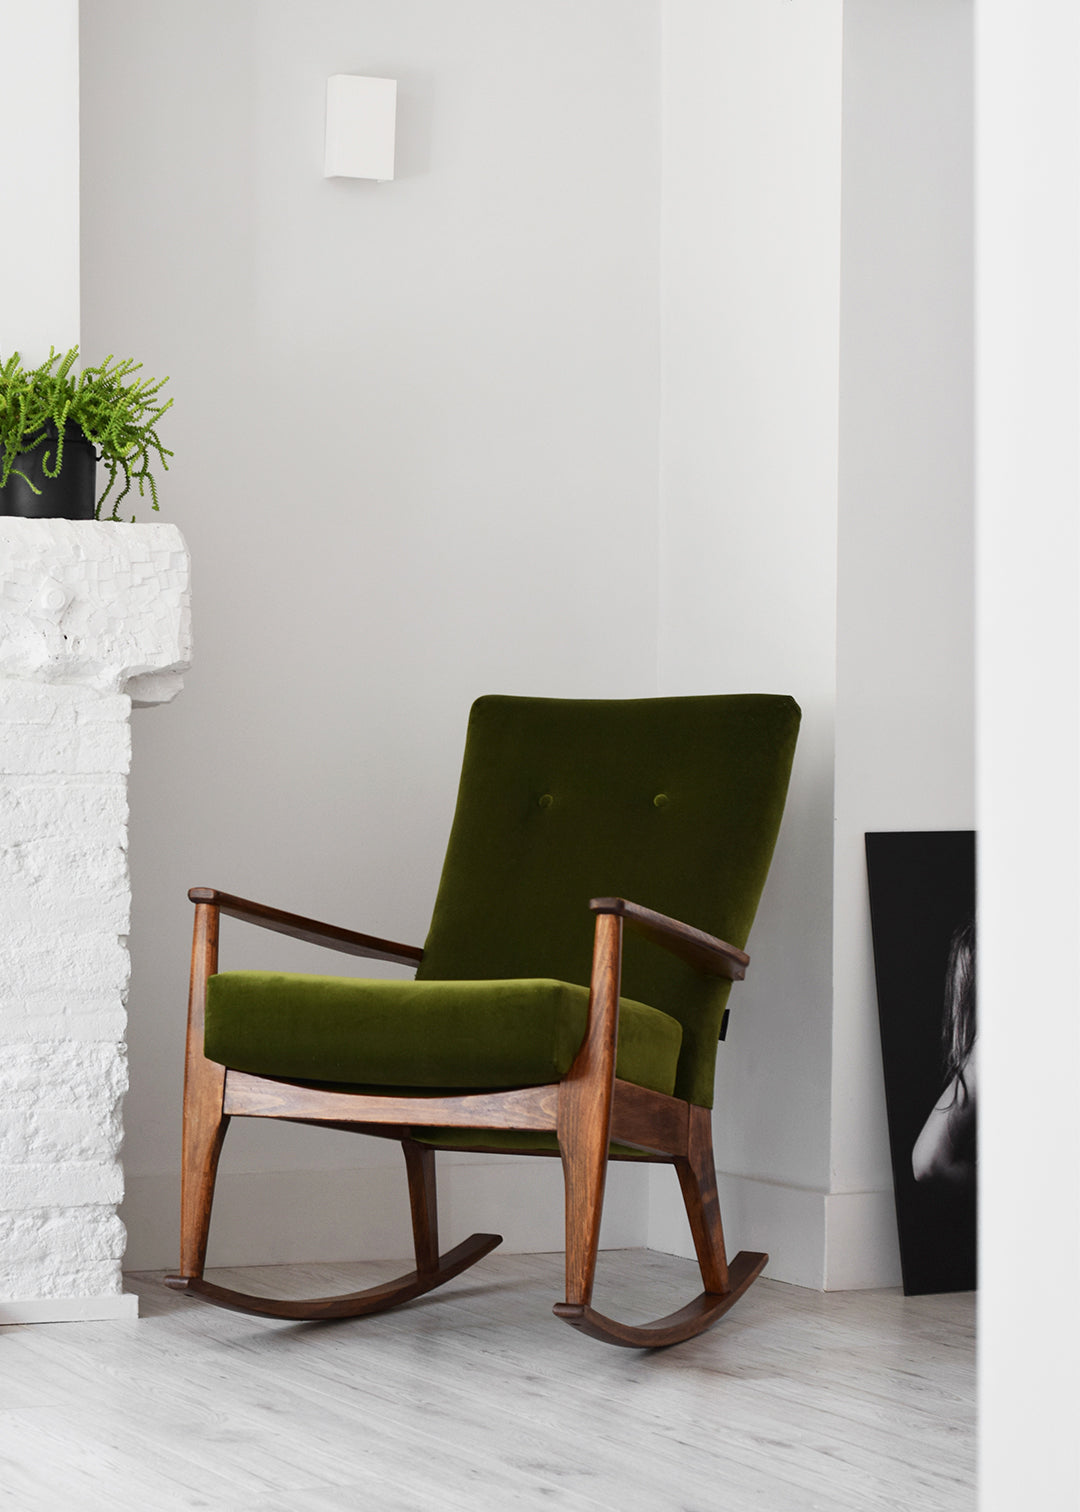 Bespoke Parker Knoll Rocking Chair - Florrie + Bill